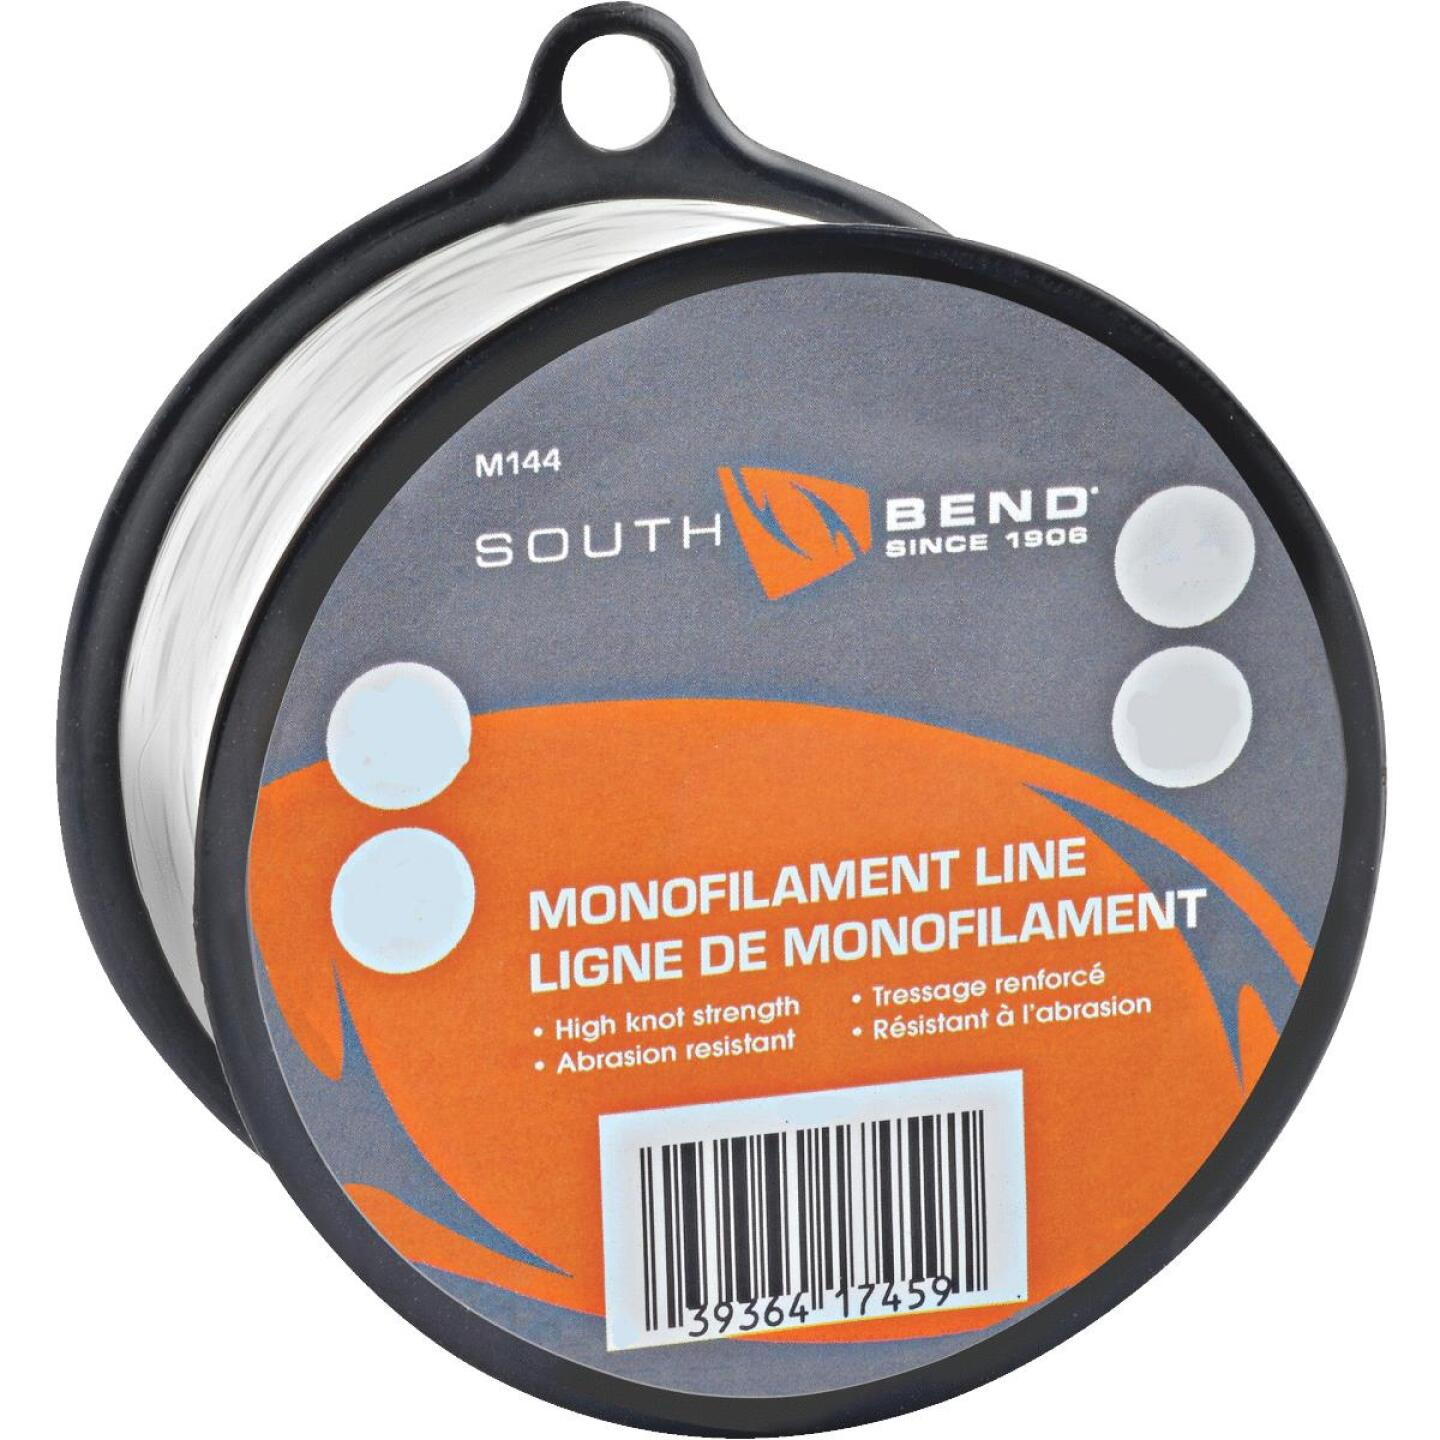 SouthBend 20 Lb. 270 Yd. Clear Monofilament Fishing Line Image 1